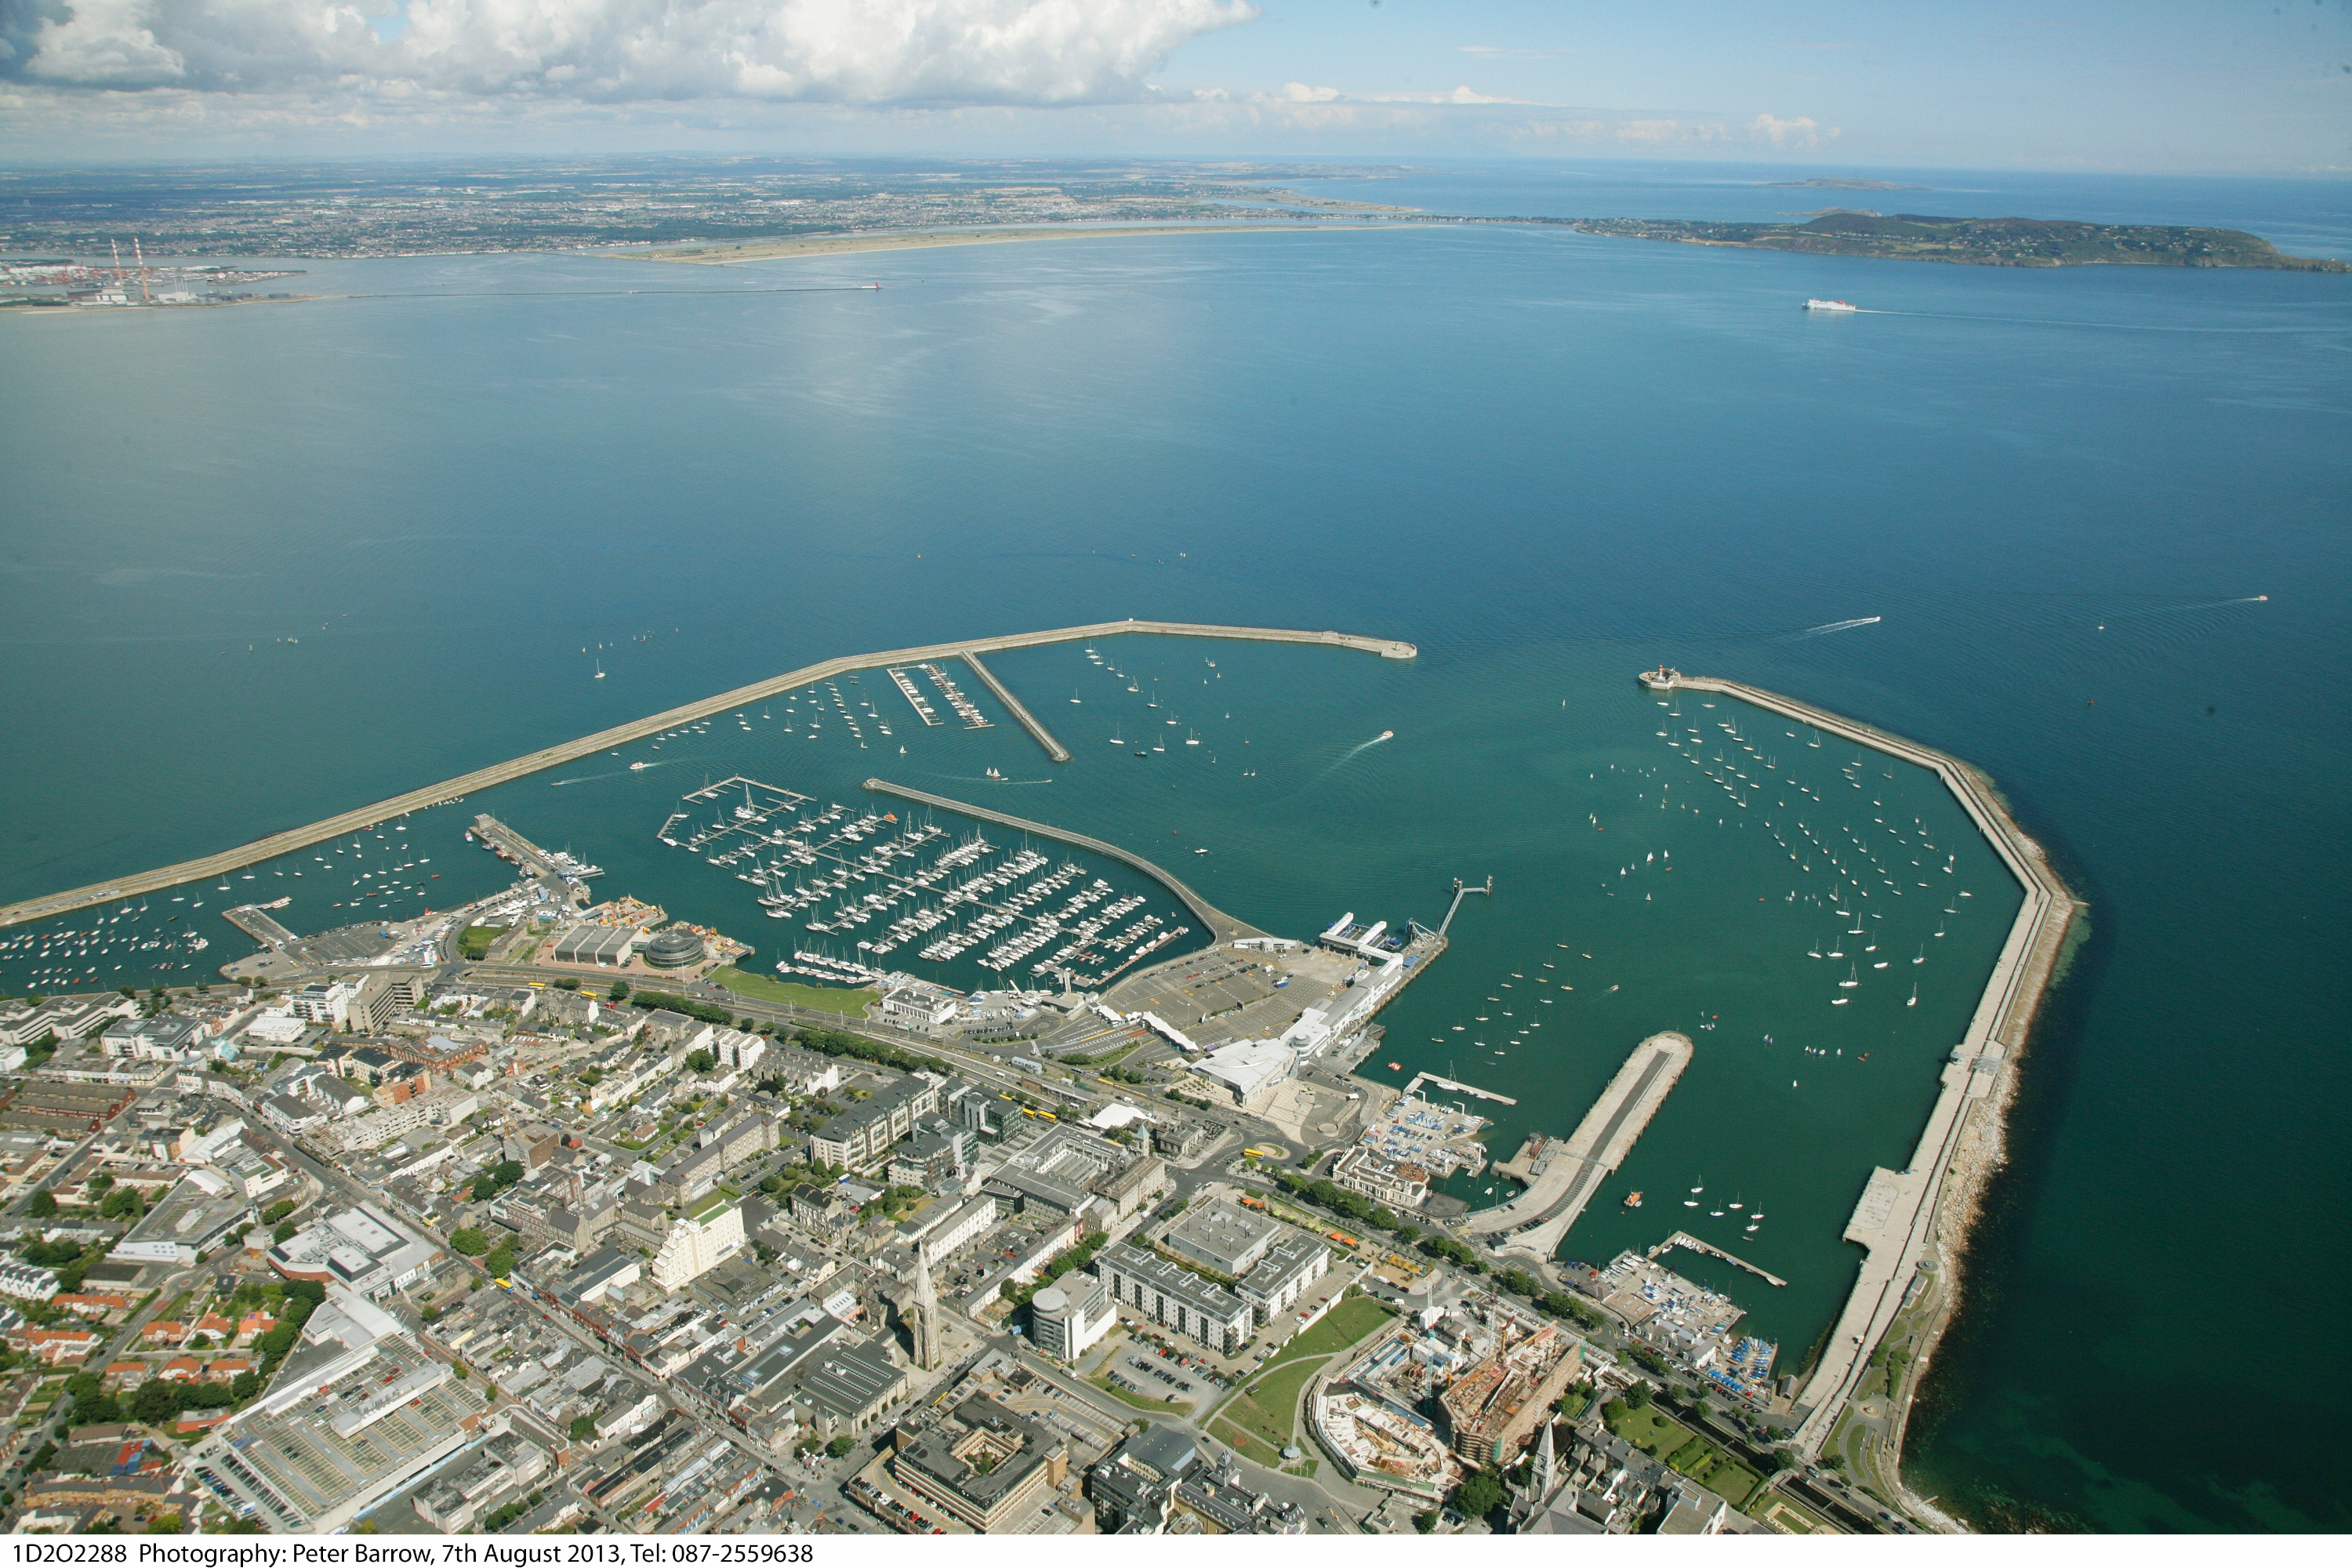 Postponed - Aware Harbour to Harbour - Dun Laoghaire